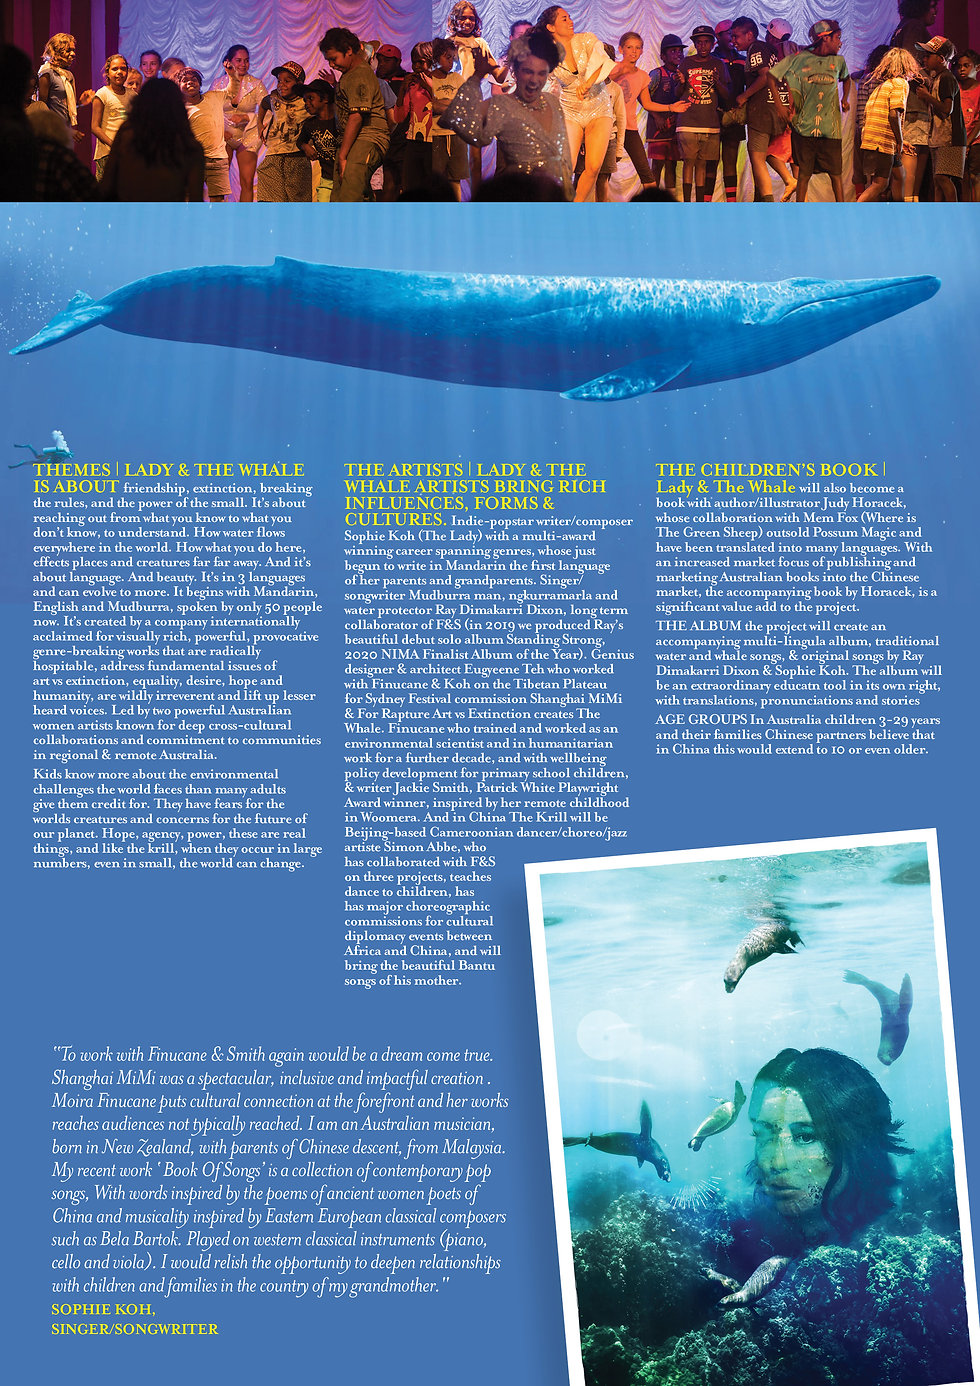 Lady and the Whale 4 pager3.jpg